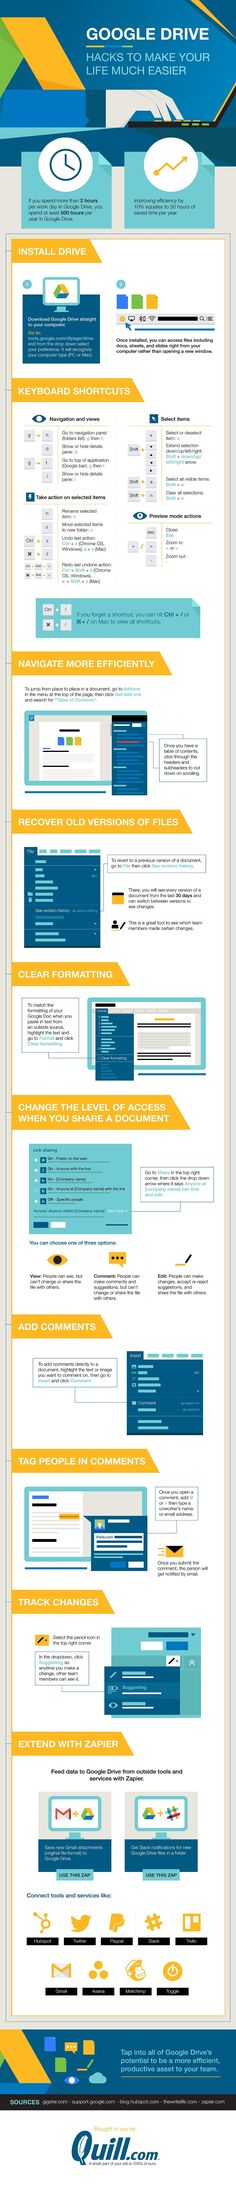 Google drive hacks to make your life much easier #infographic #Google #GoogleDrive #Hacks #Shortcuts #Internet